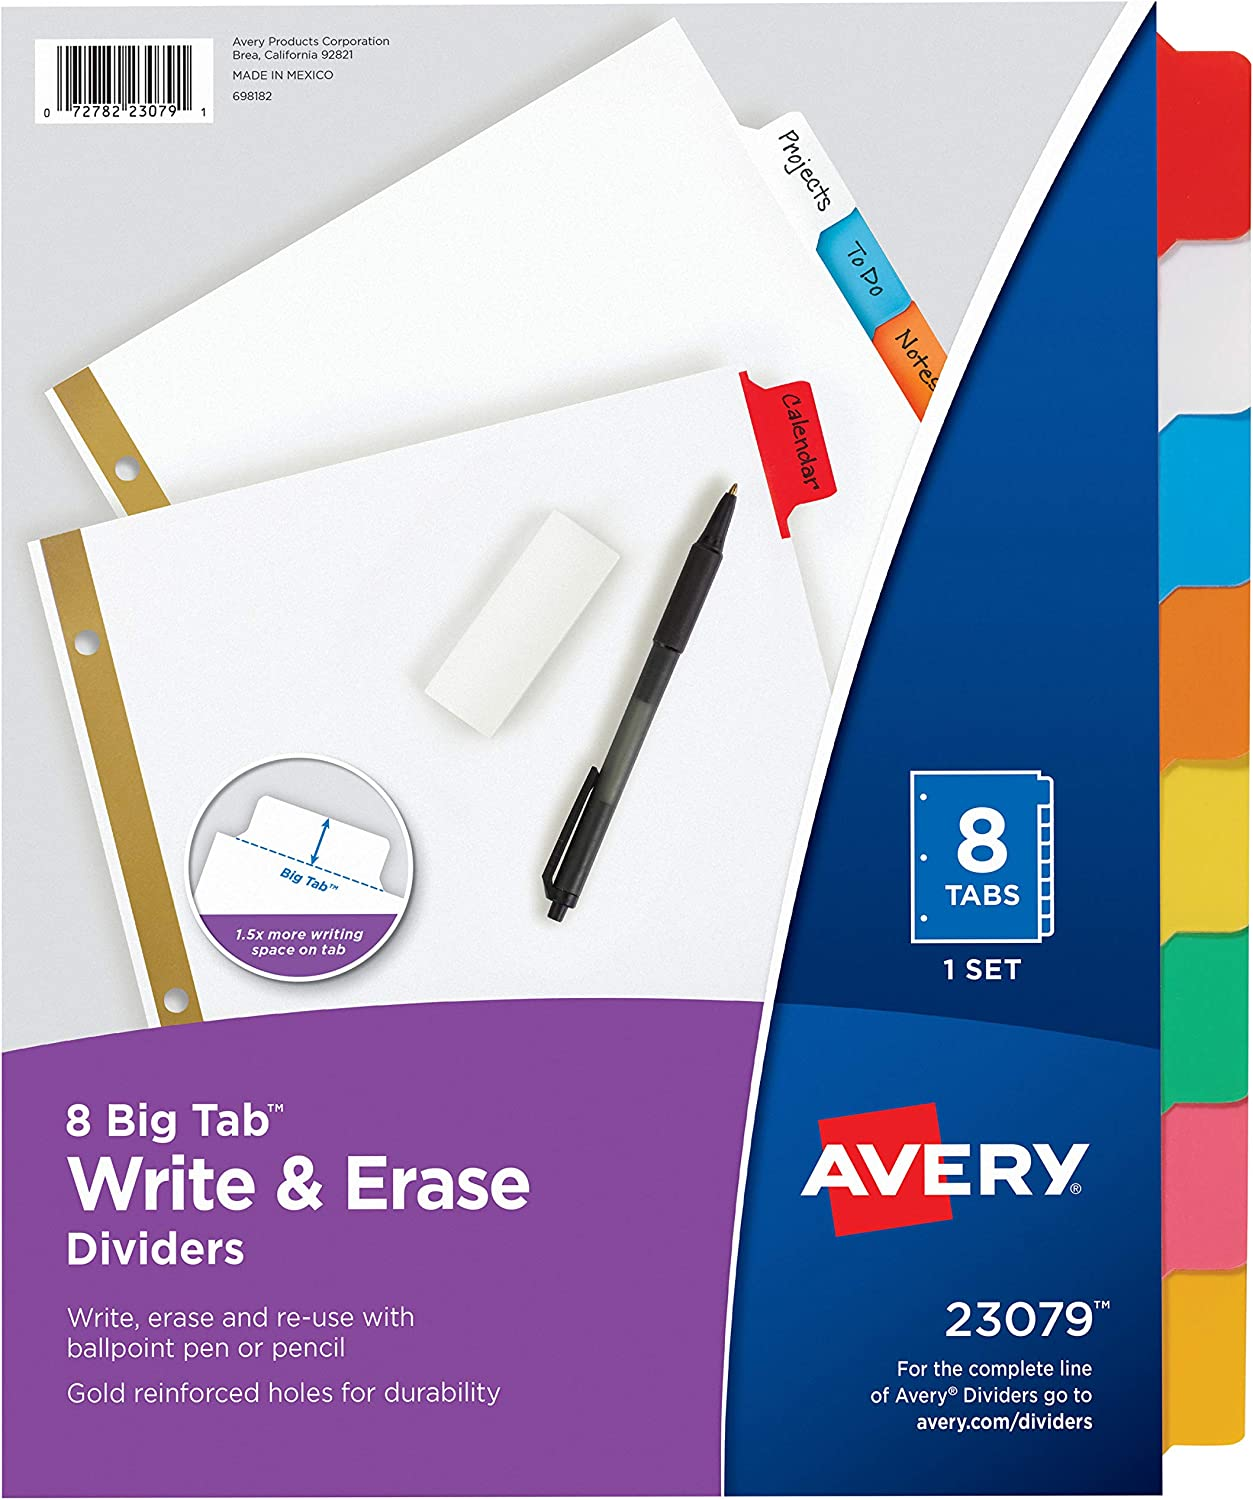 Avery 8-Tab Binder Dividers, Write & Erase Multicolor Big Tabs, 6 Sets, School Binder Organizers (23079) - 73079